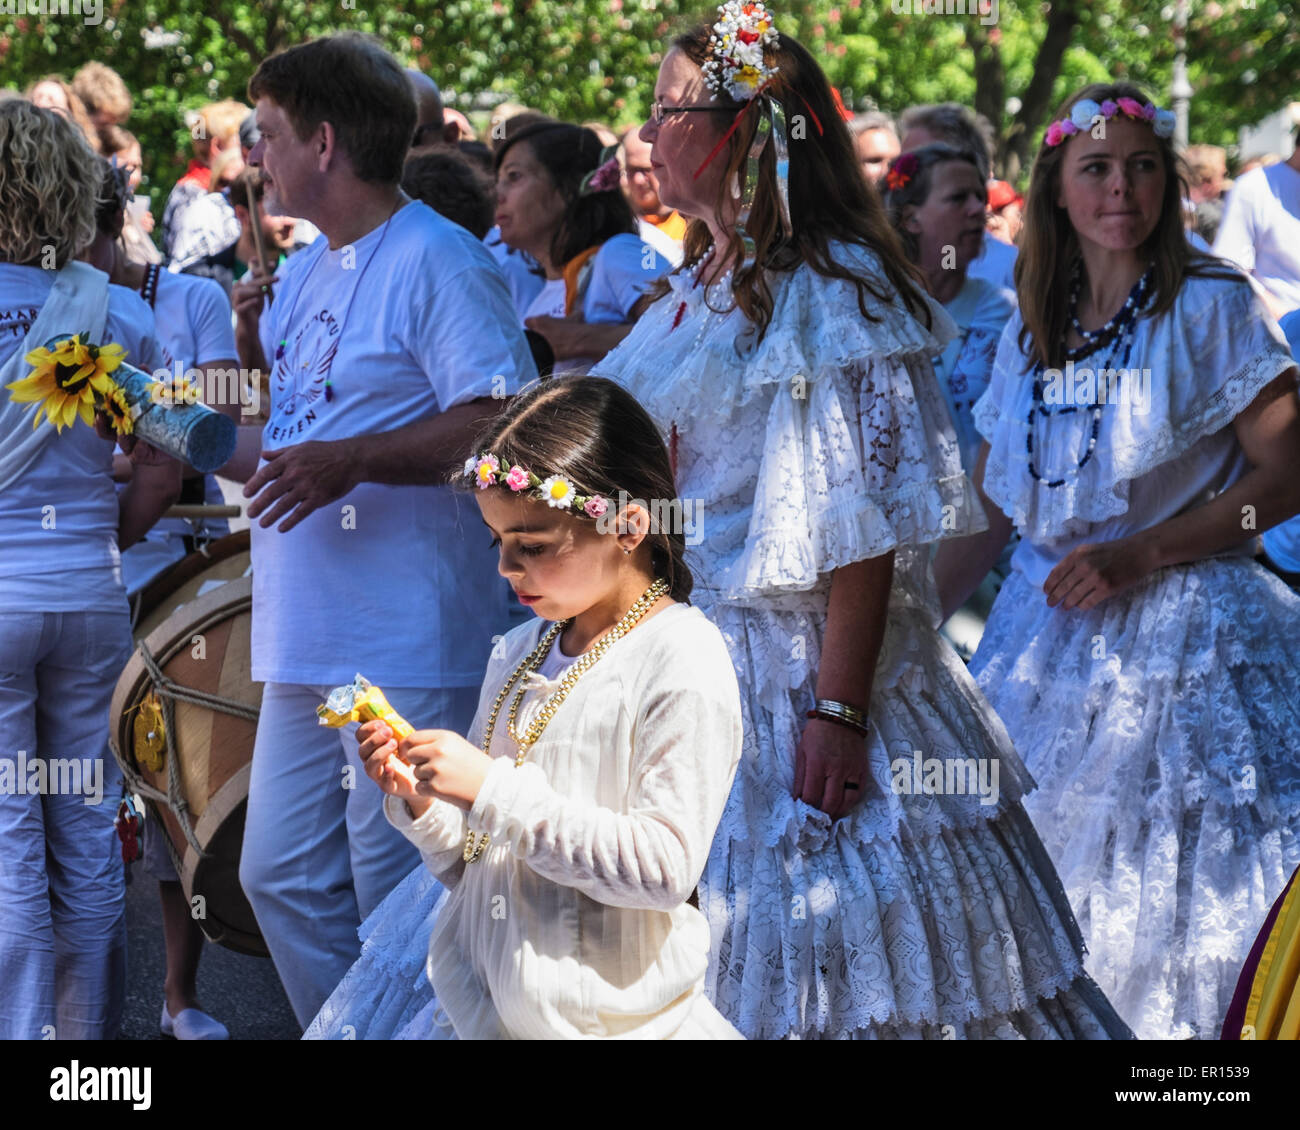 Kreuzberg, Berlin, Germany, 24th May 2015. Pretty young girl dancer in white dress and floral headband in parade - Stock Image